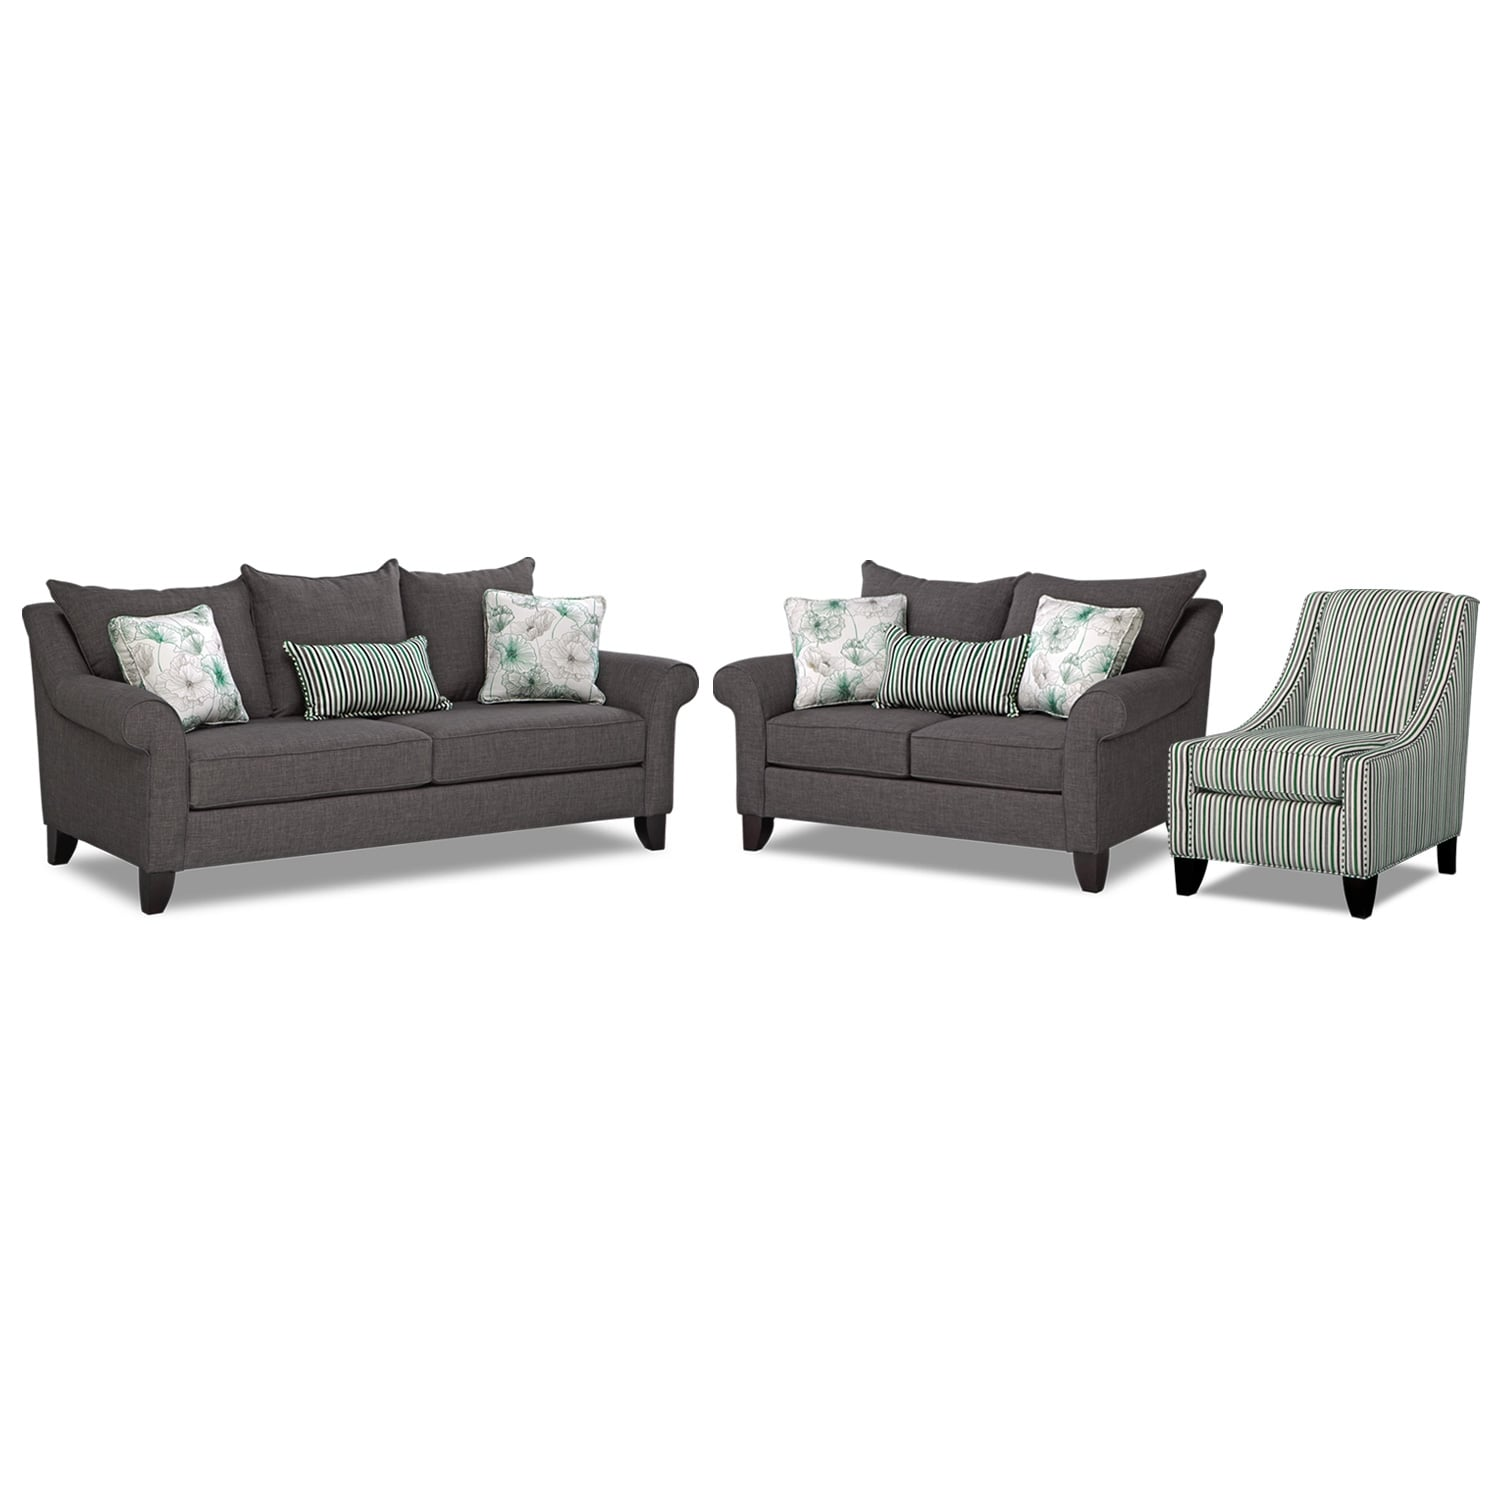 Living Room Furniture - Jasmine 3 Pc. Living Room w/ Accent Chair